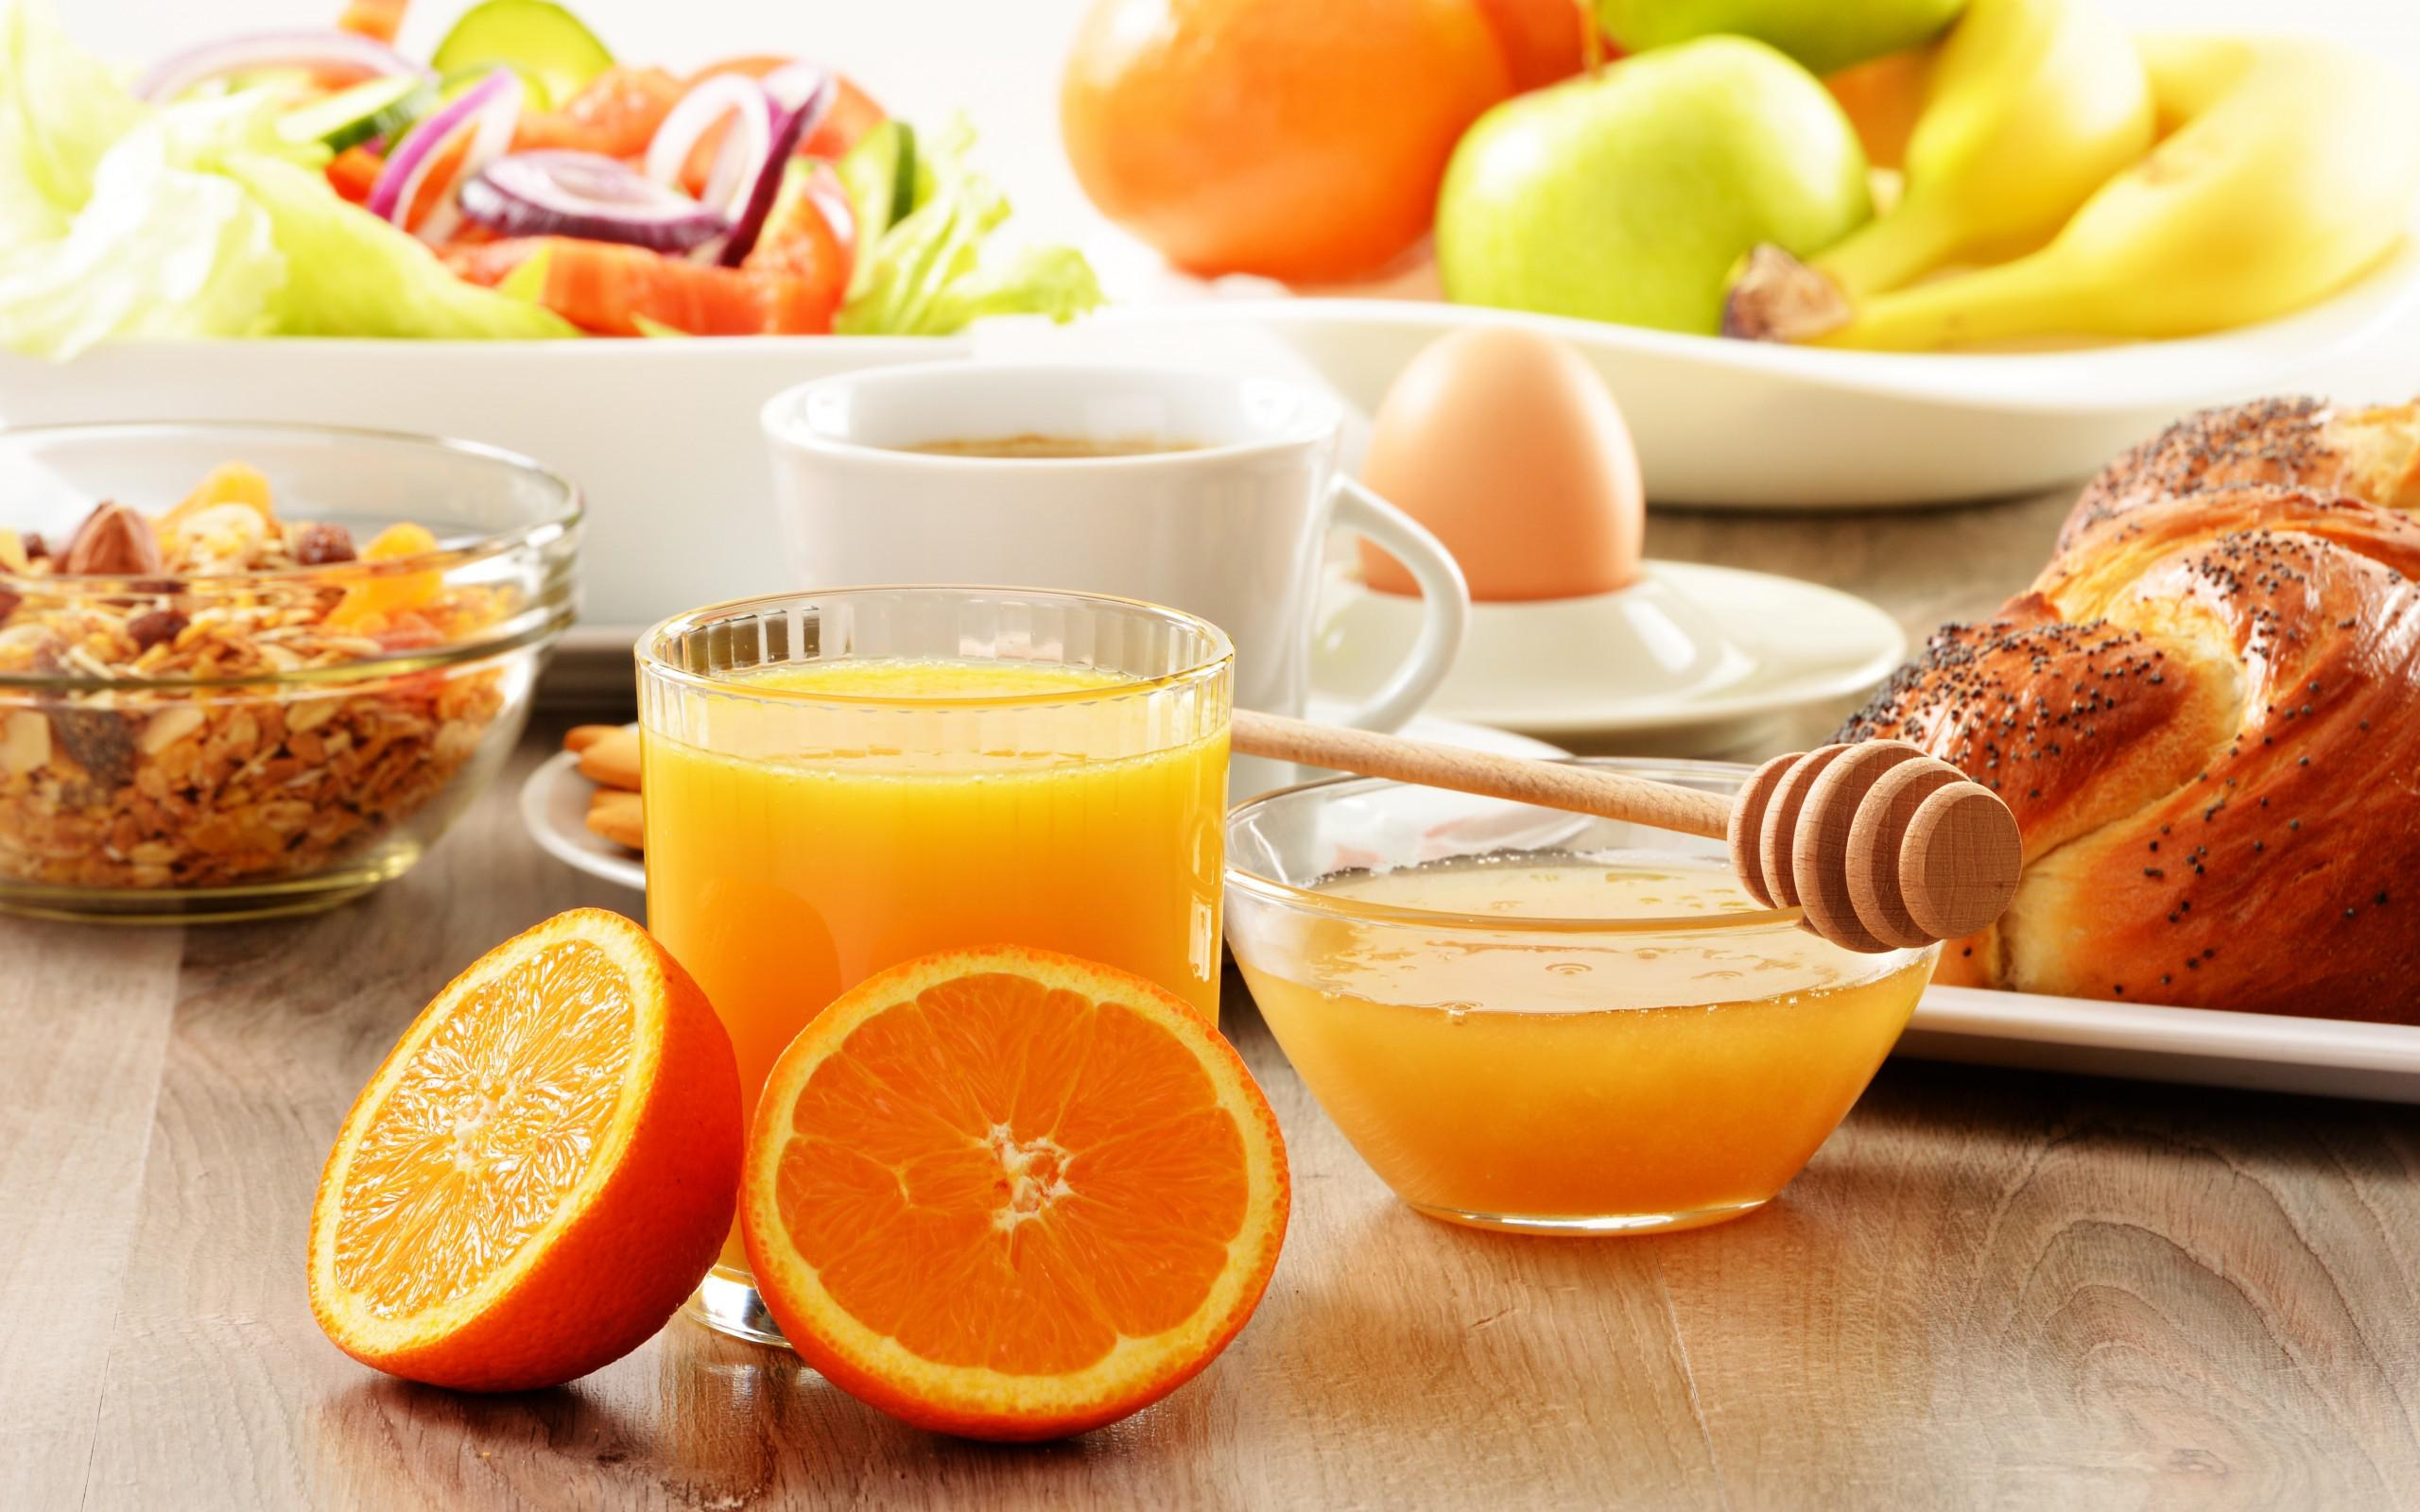 Orange Juice for Breakfast  6010.27 Kb